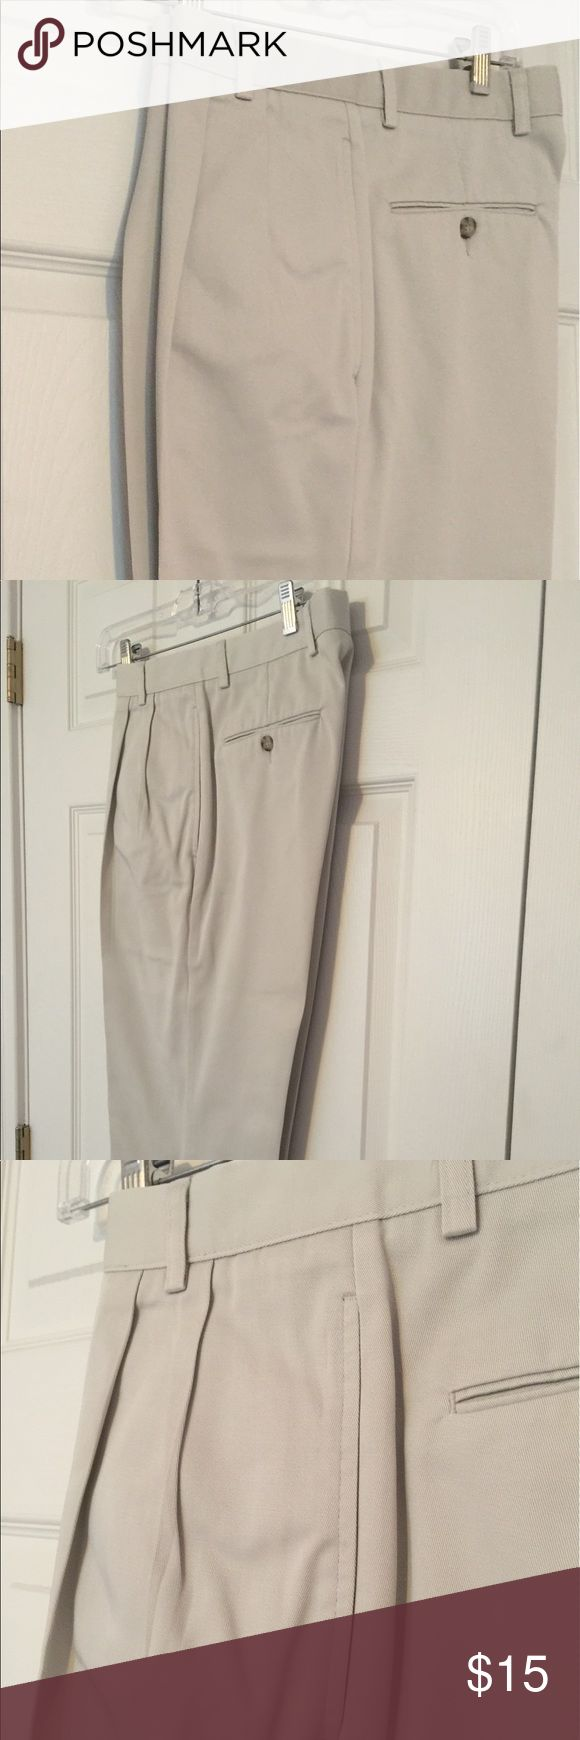 Men's khaki casual pants Men's casual khaki pants from Dockers. Straight leg, pleated front. 32' x 32' is the size. Excellent condition. Dockers Pants Chinos & Khakis